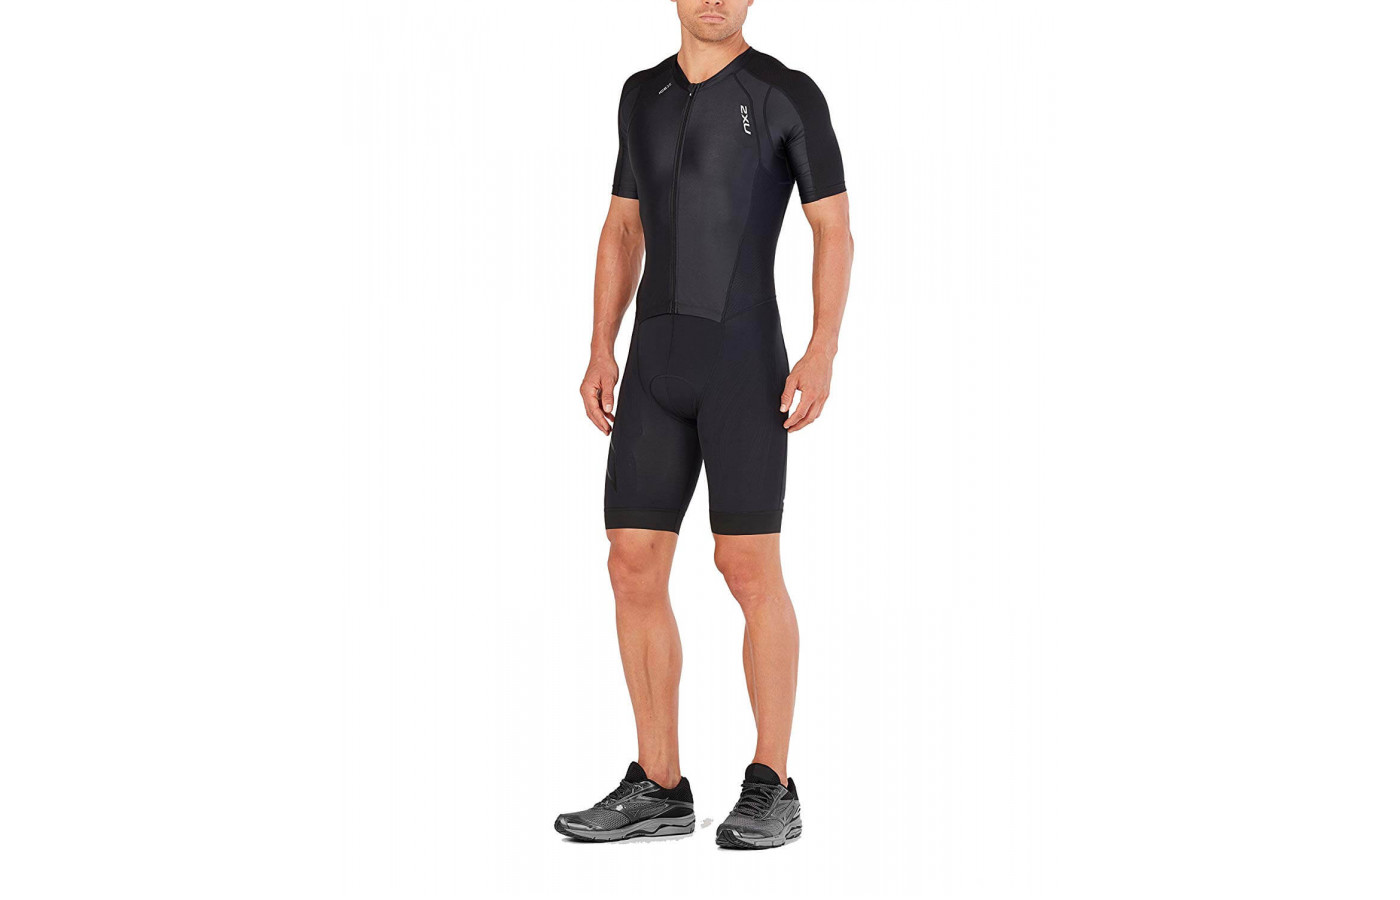 The 2XU Compression Full Zip Sleeved Trisuit was designed to handle triathlons.